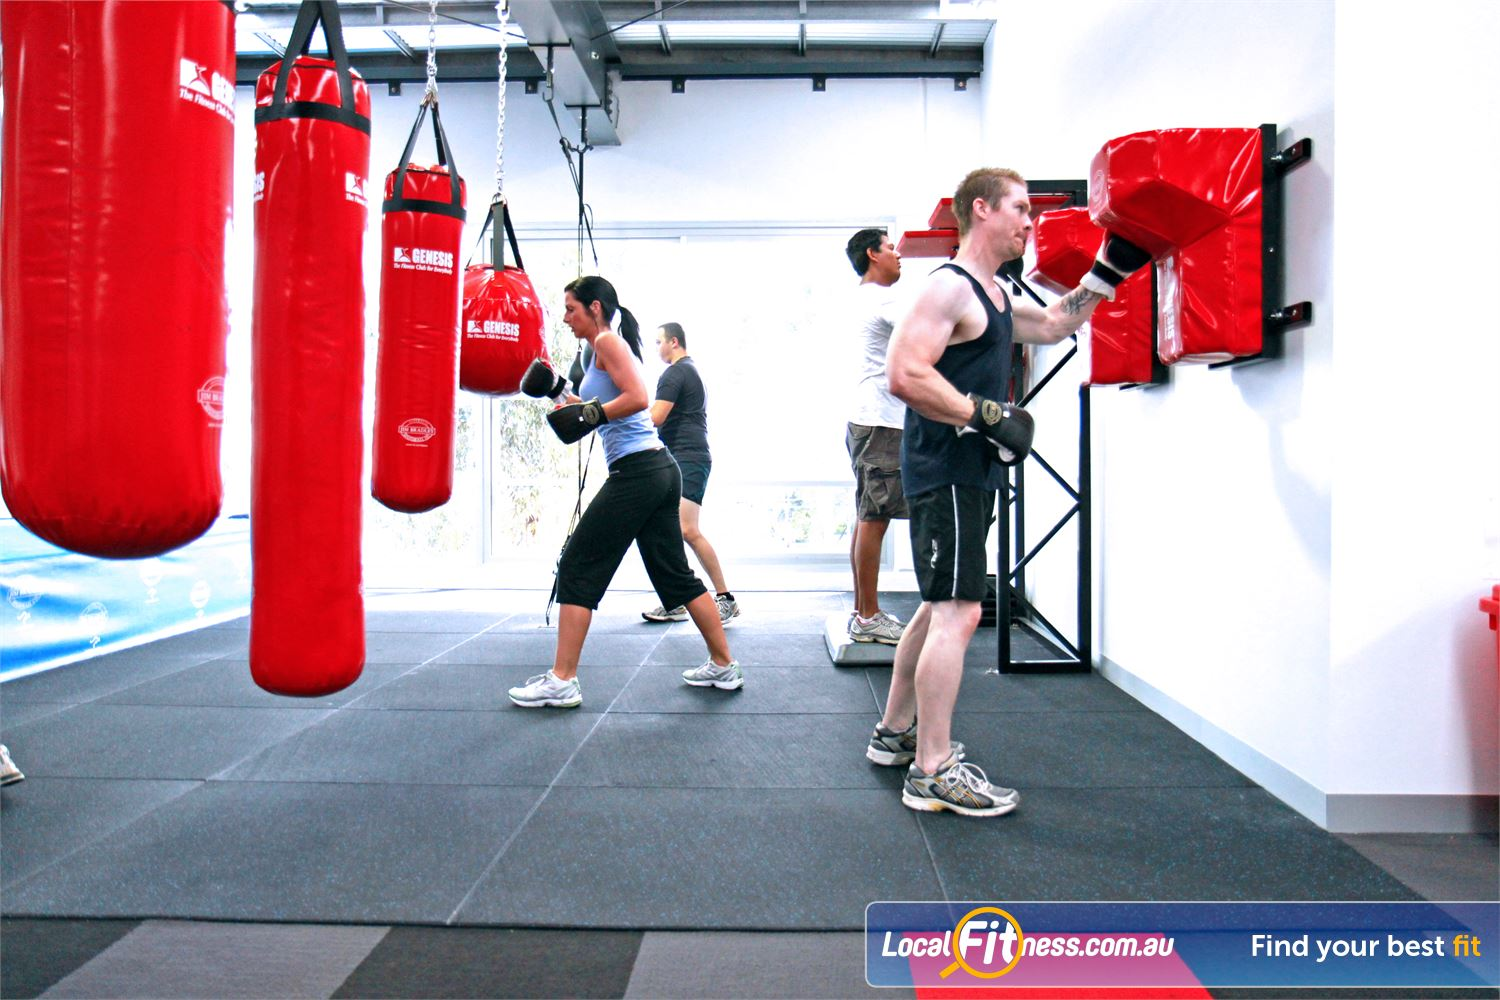 Genesis Fitness Clubs Maidstone Join in on our many 'specialised boxing' classes in Maidstone.